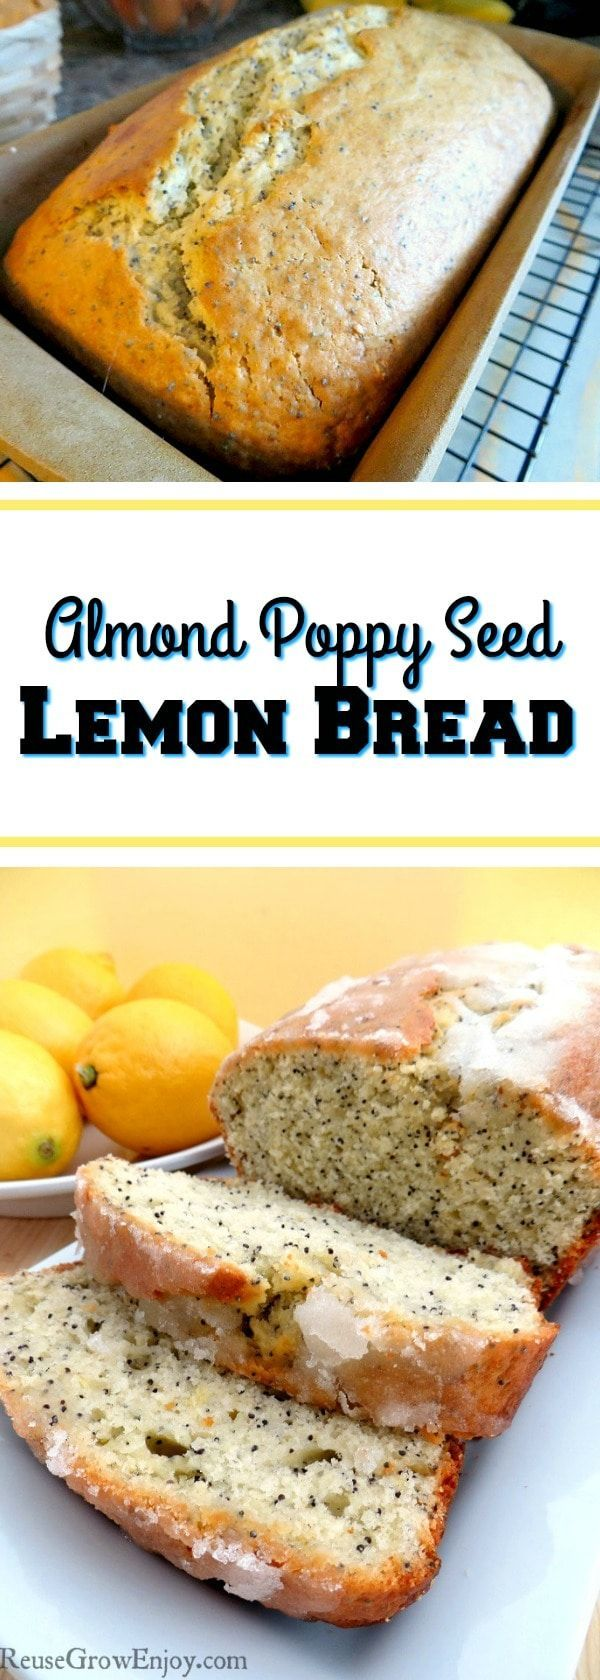 If you like lemon, be sure to check out this amazing Almond Poppy Seed Lemon Bread Recipe! It is so good, you will be coming back for more!